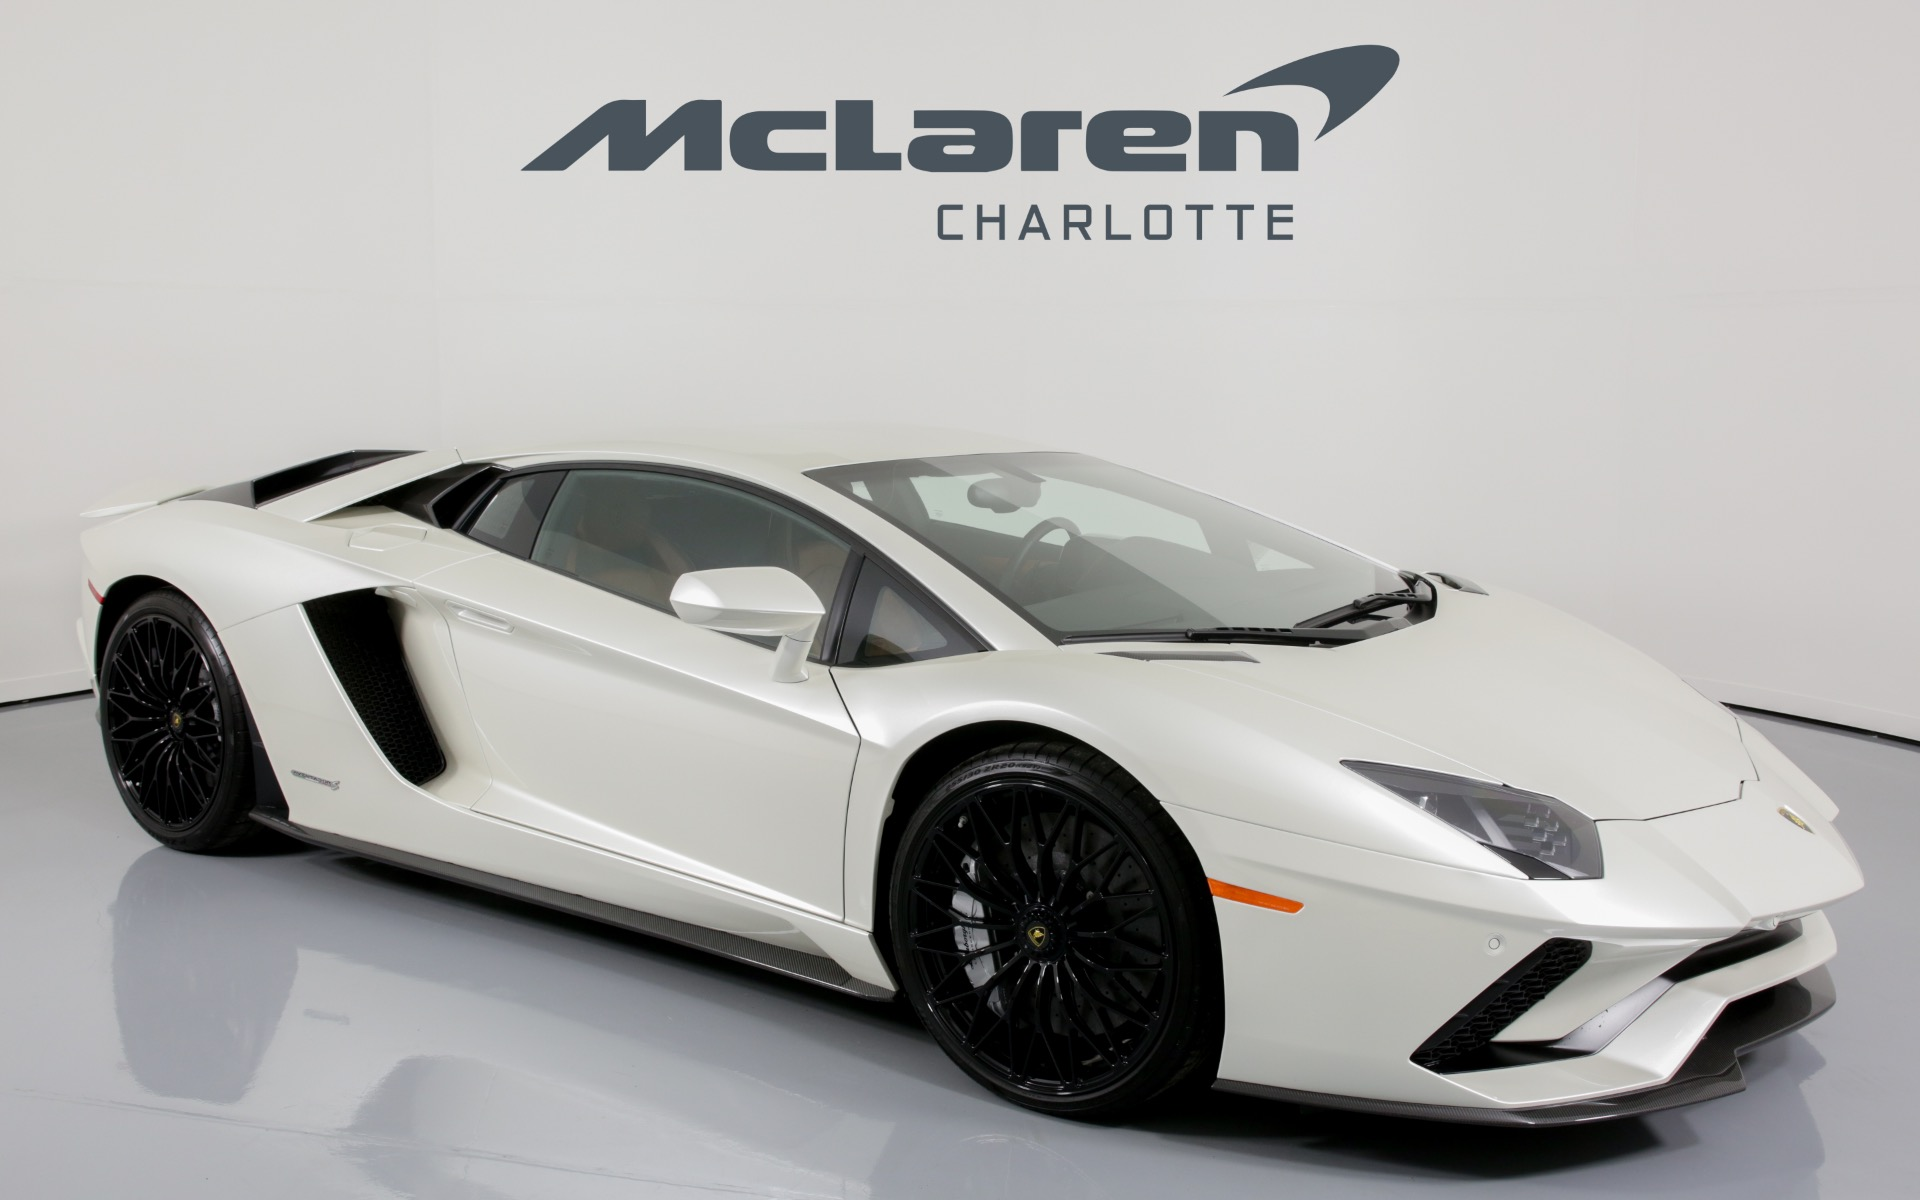 Used 2018 Lamborghini Aventador Lp 740 4 S For Sale 424 995